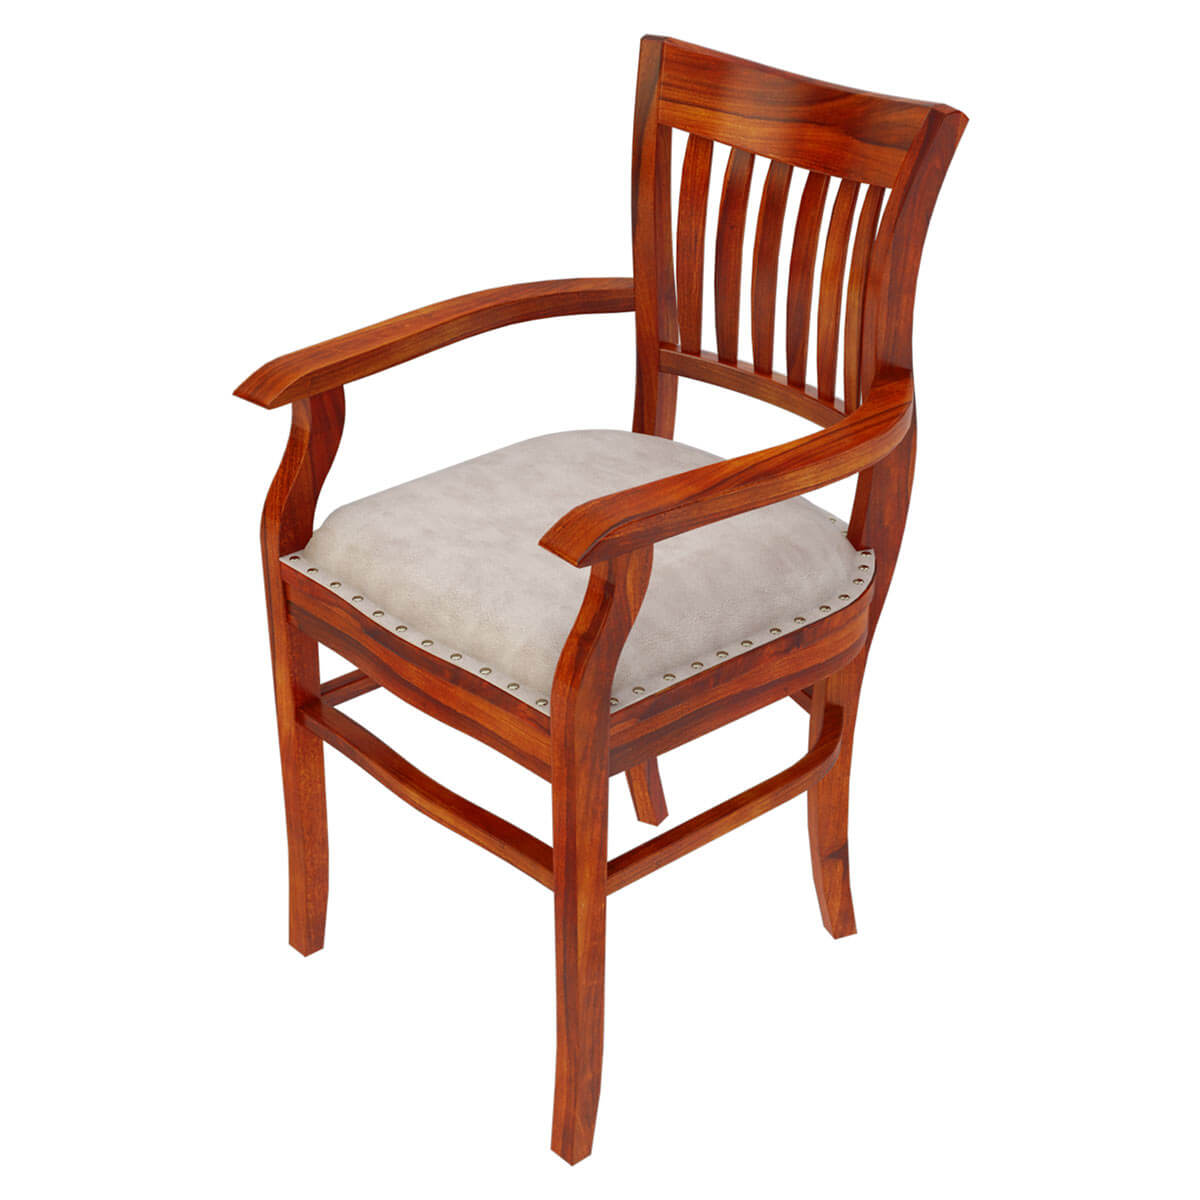 Wood Dining Chair Solid Wood Arm Chair Leather Cushion Dining Furniture